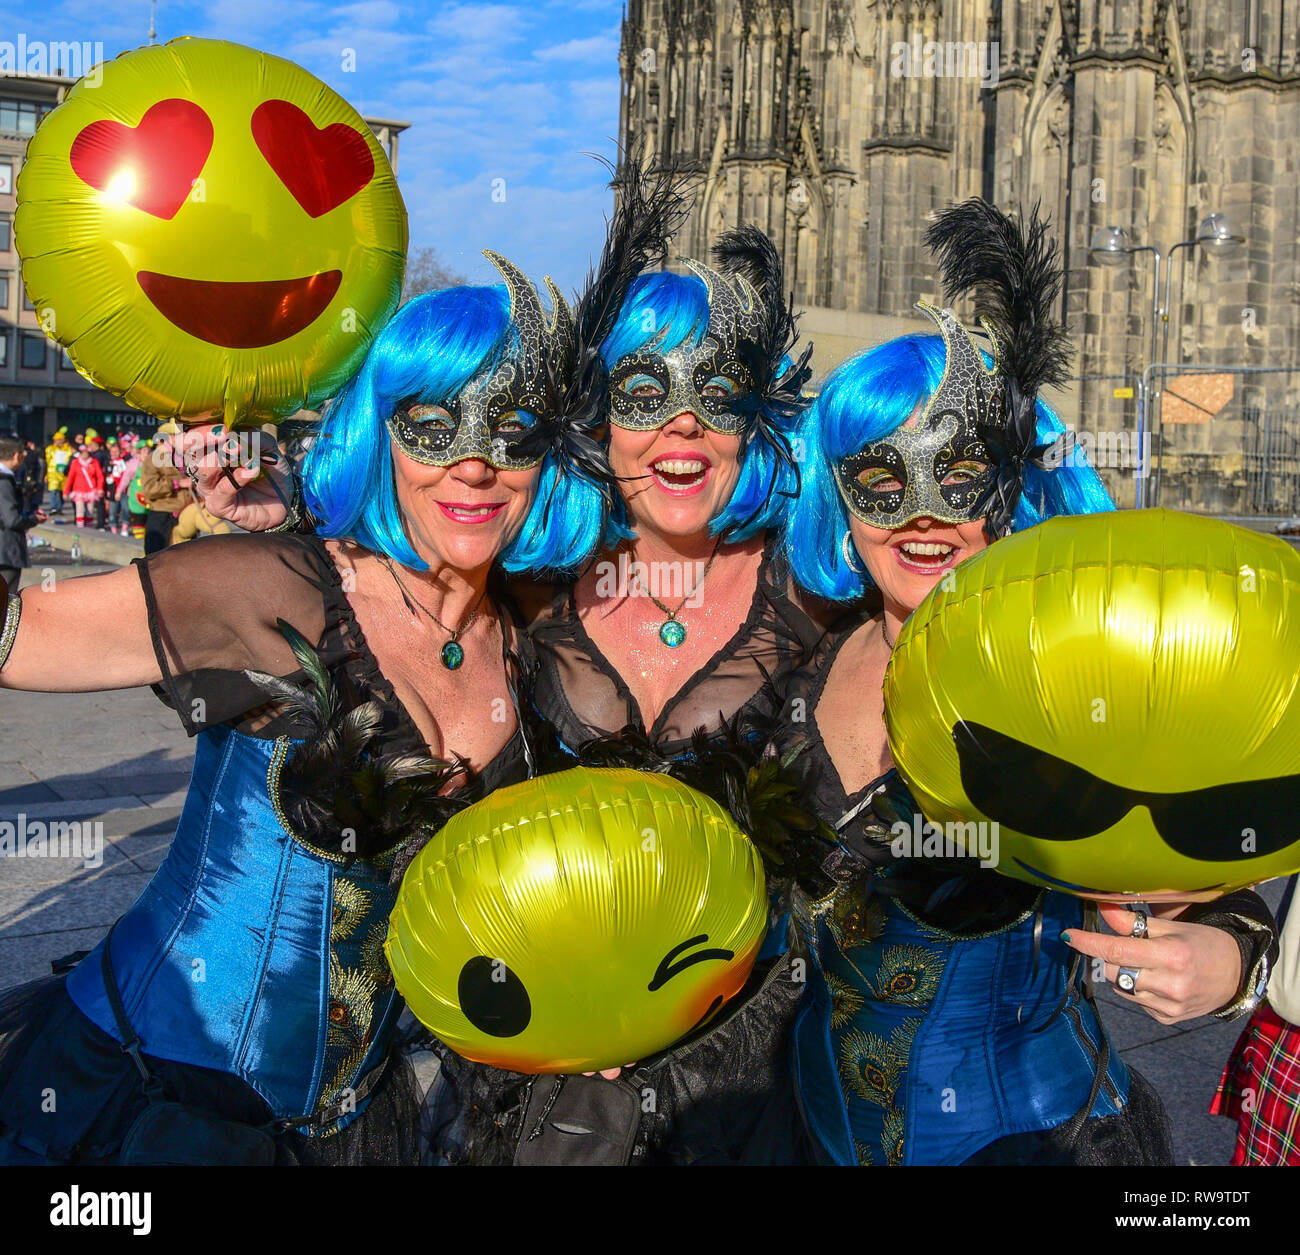 Carnaval de Cologne célèbre fêtards Photo Stock